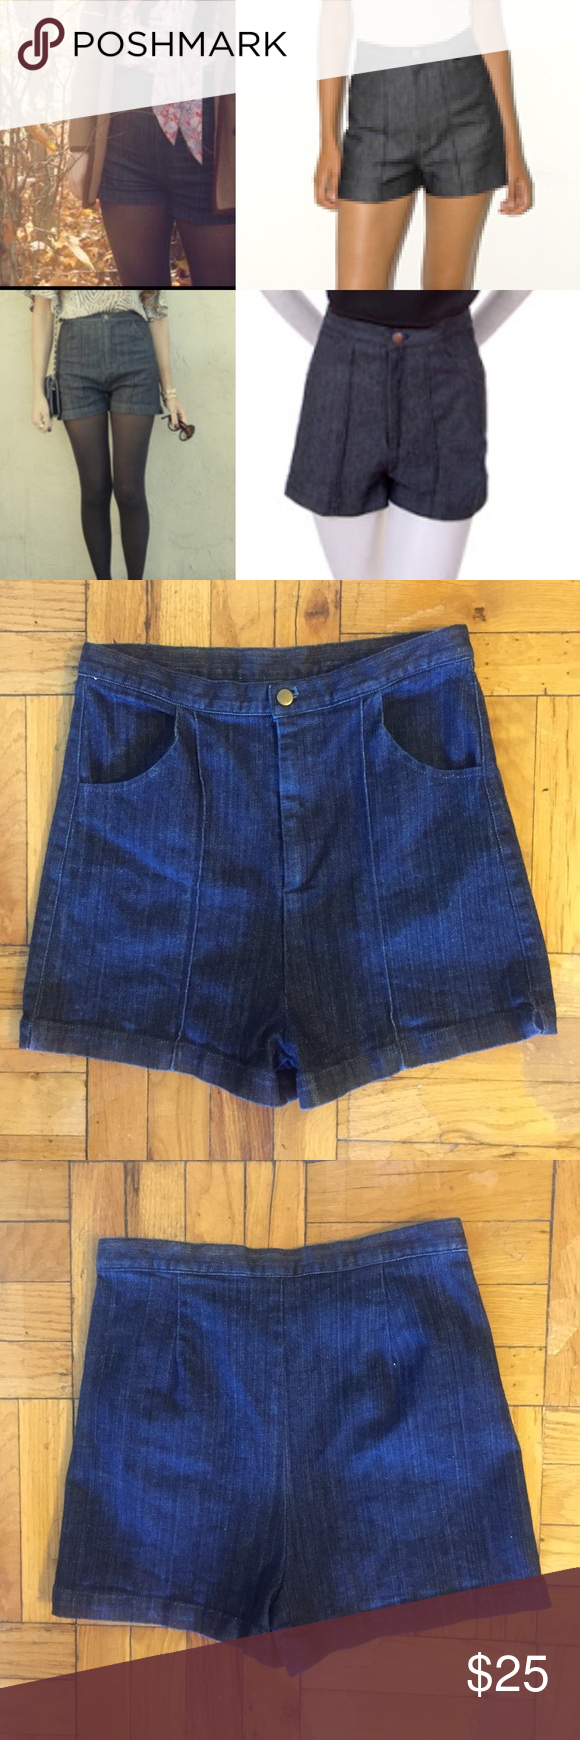 UO Super High Rise Jean Shorts, Fletcher by Lyell Urban Outfitters Super High Rise Jean Shorts.  Brand is Fletcher by Lyell. Great looking shorts!Dark indigo. 98% cotton, 1% spandex. Worn a small handful of times, and in excellent condition. I can provide measurements upon request. Urban Outfitters Shorts Jean Shorts